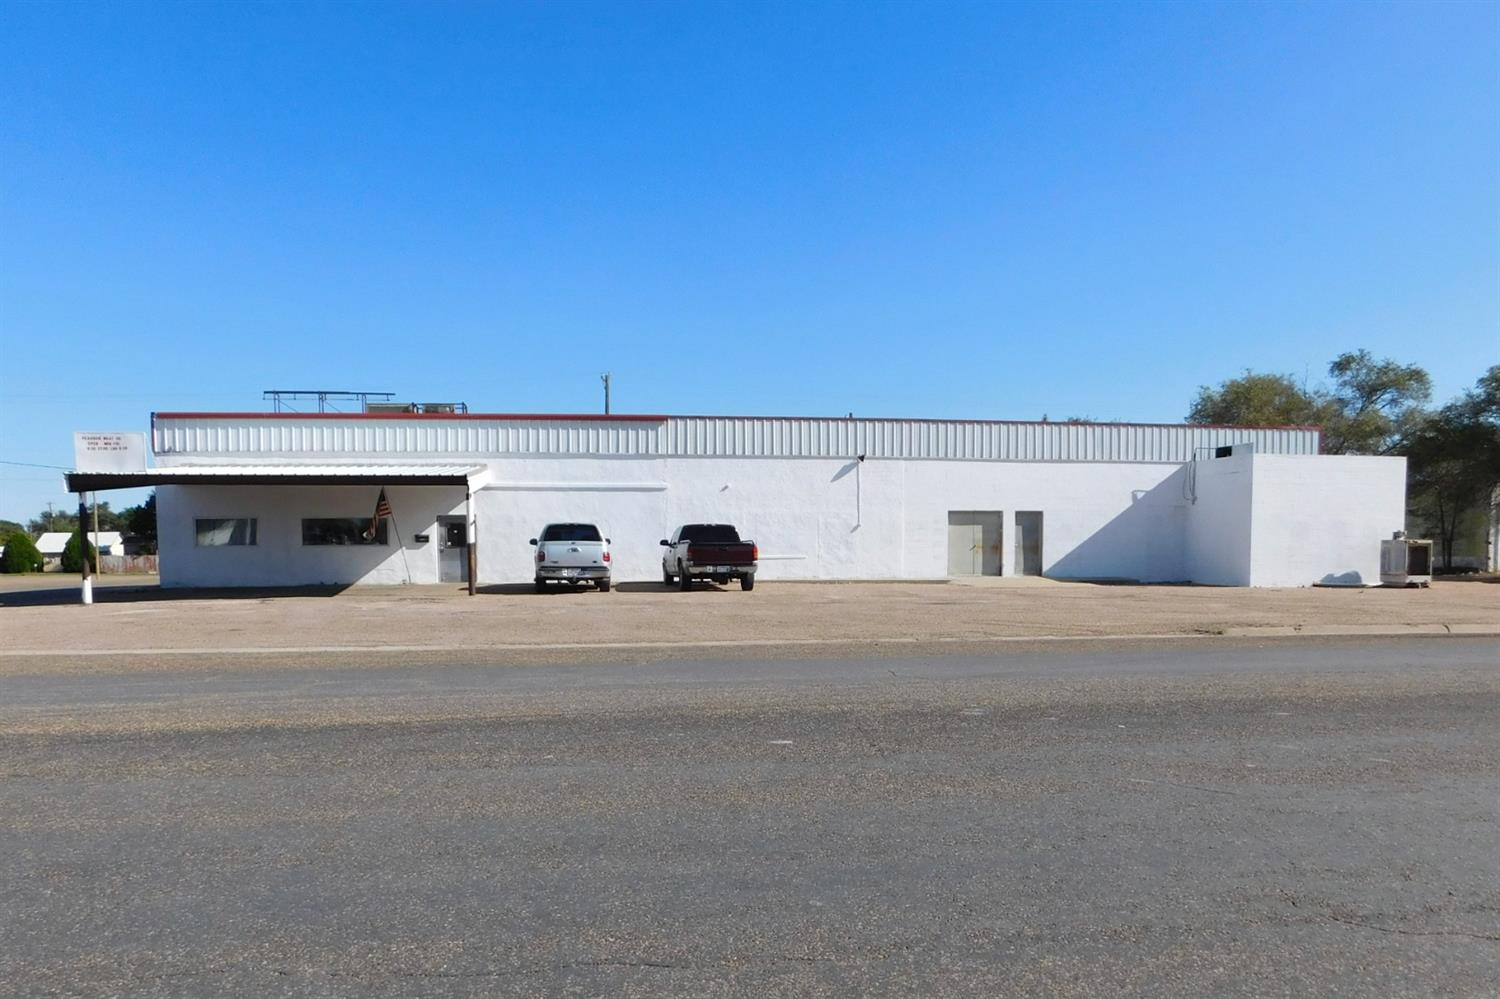 Operational custom processor in Muleshoe, TX for sale.  Equipment in the processing area is updated,can handle several weeks worth of kill. Square feet includes kill floor (25x21), two hanging coolers (23x34, 17x33), two large freezers 14x19, 11x15 fabrication room with packaging equipment, and lots of storage. Big cooler is 252 square feet and can hang about 21 head of cattle. Smaller cooler is 180 sq ft and can hold about 10 head of cattle; total hang is 30+ head cattle. Two freezers total 1,634 sq ft and there is a non working freezer with 352 sq ft. equipment includes vacuum machine, band saw, tenderizer, smokehouse, sausage machine, patty machine.